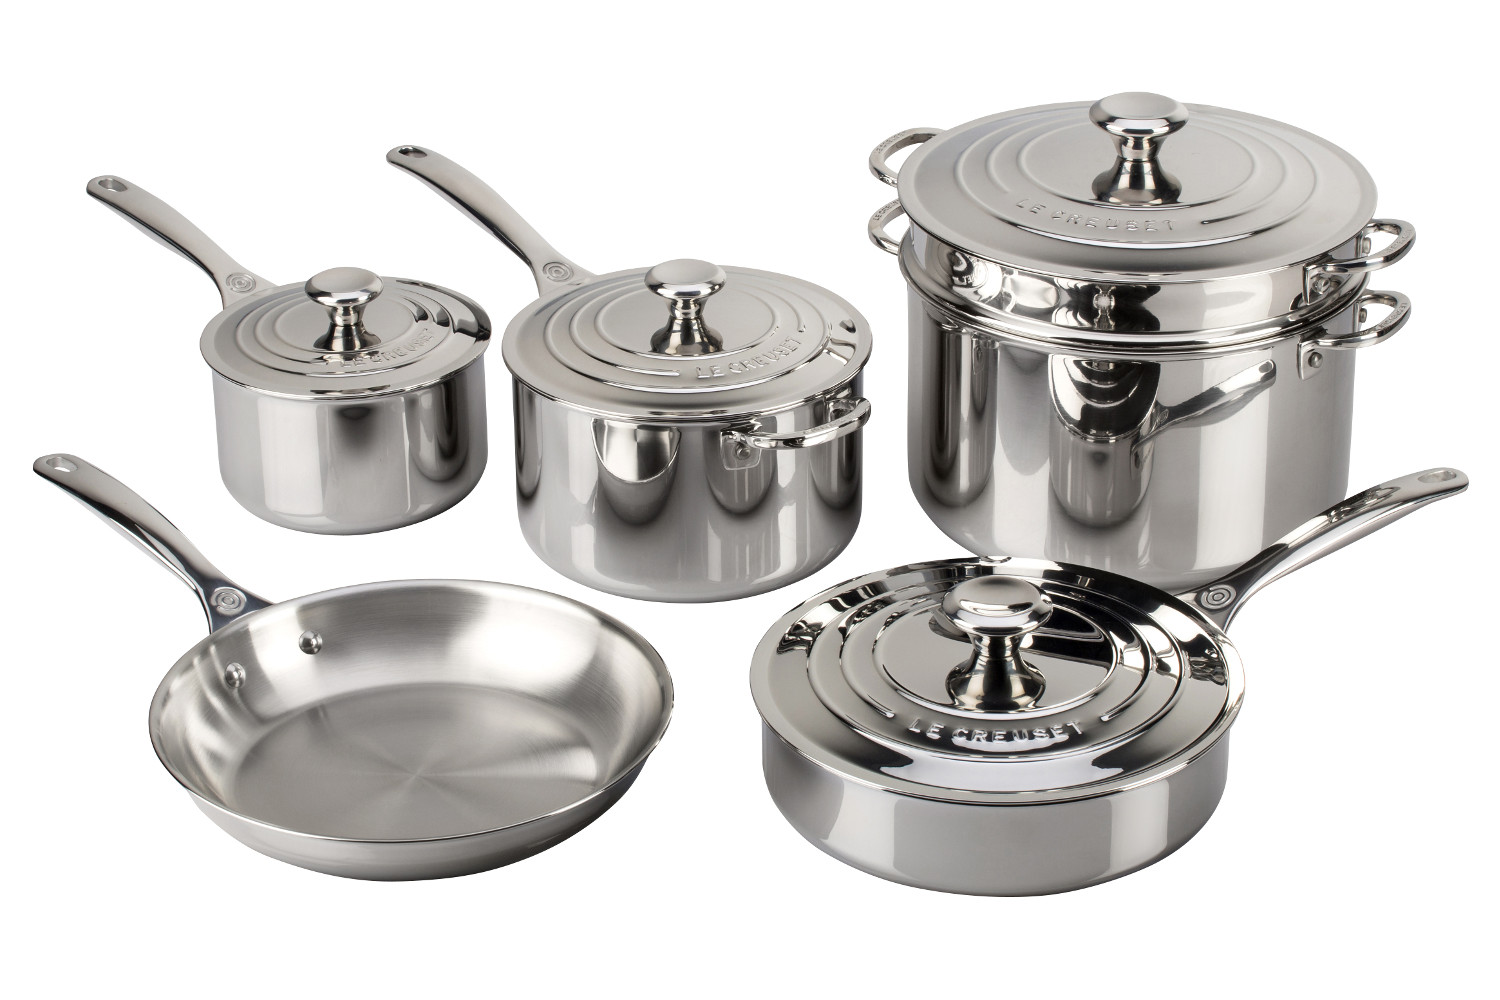 Le Creuset Premium Stainless Steel 10 Piece Cookware Set